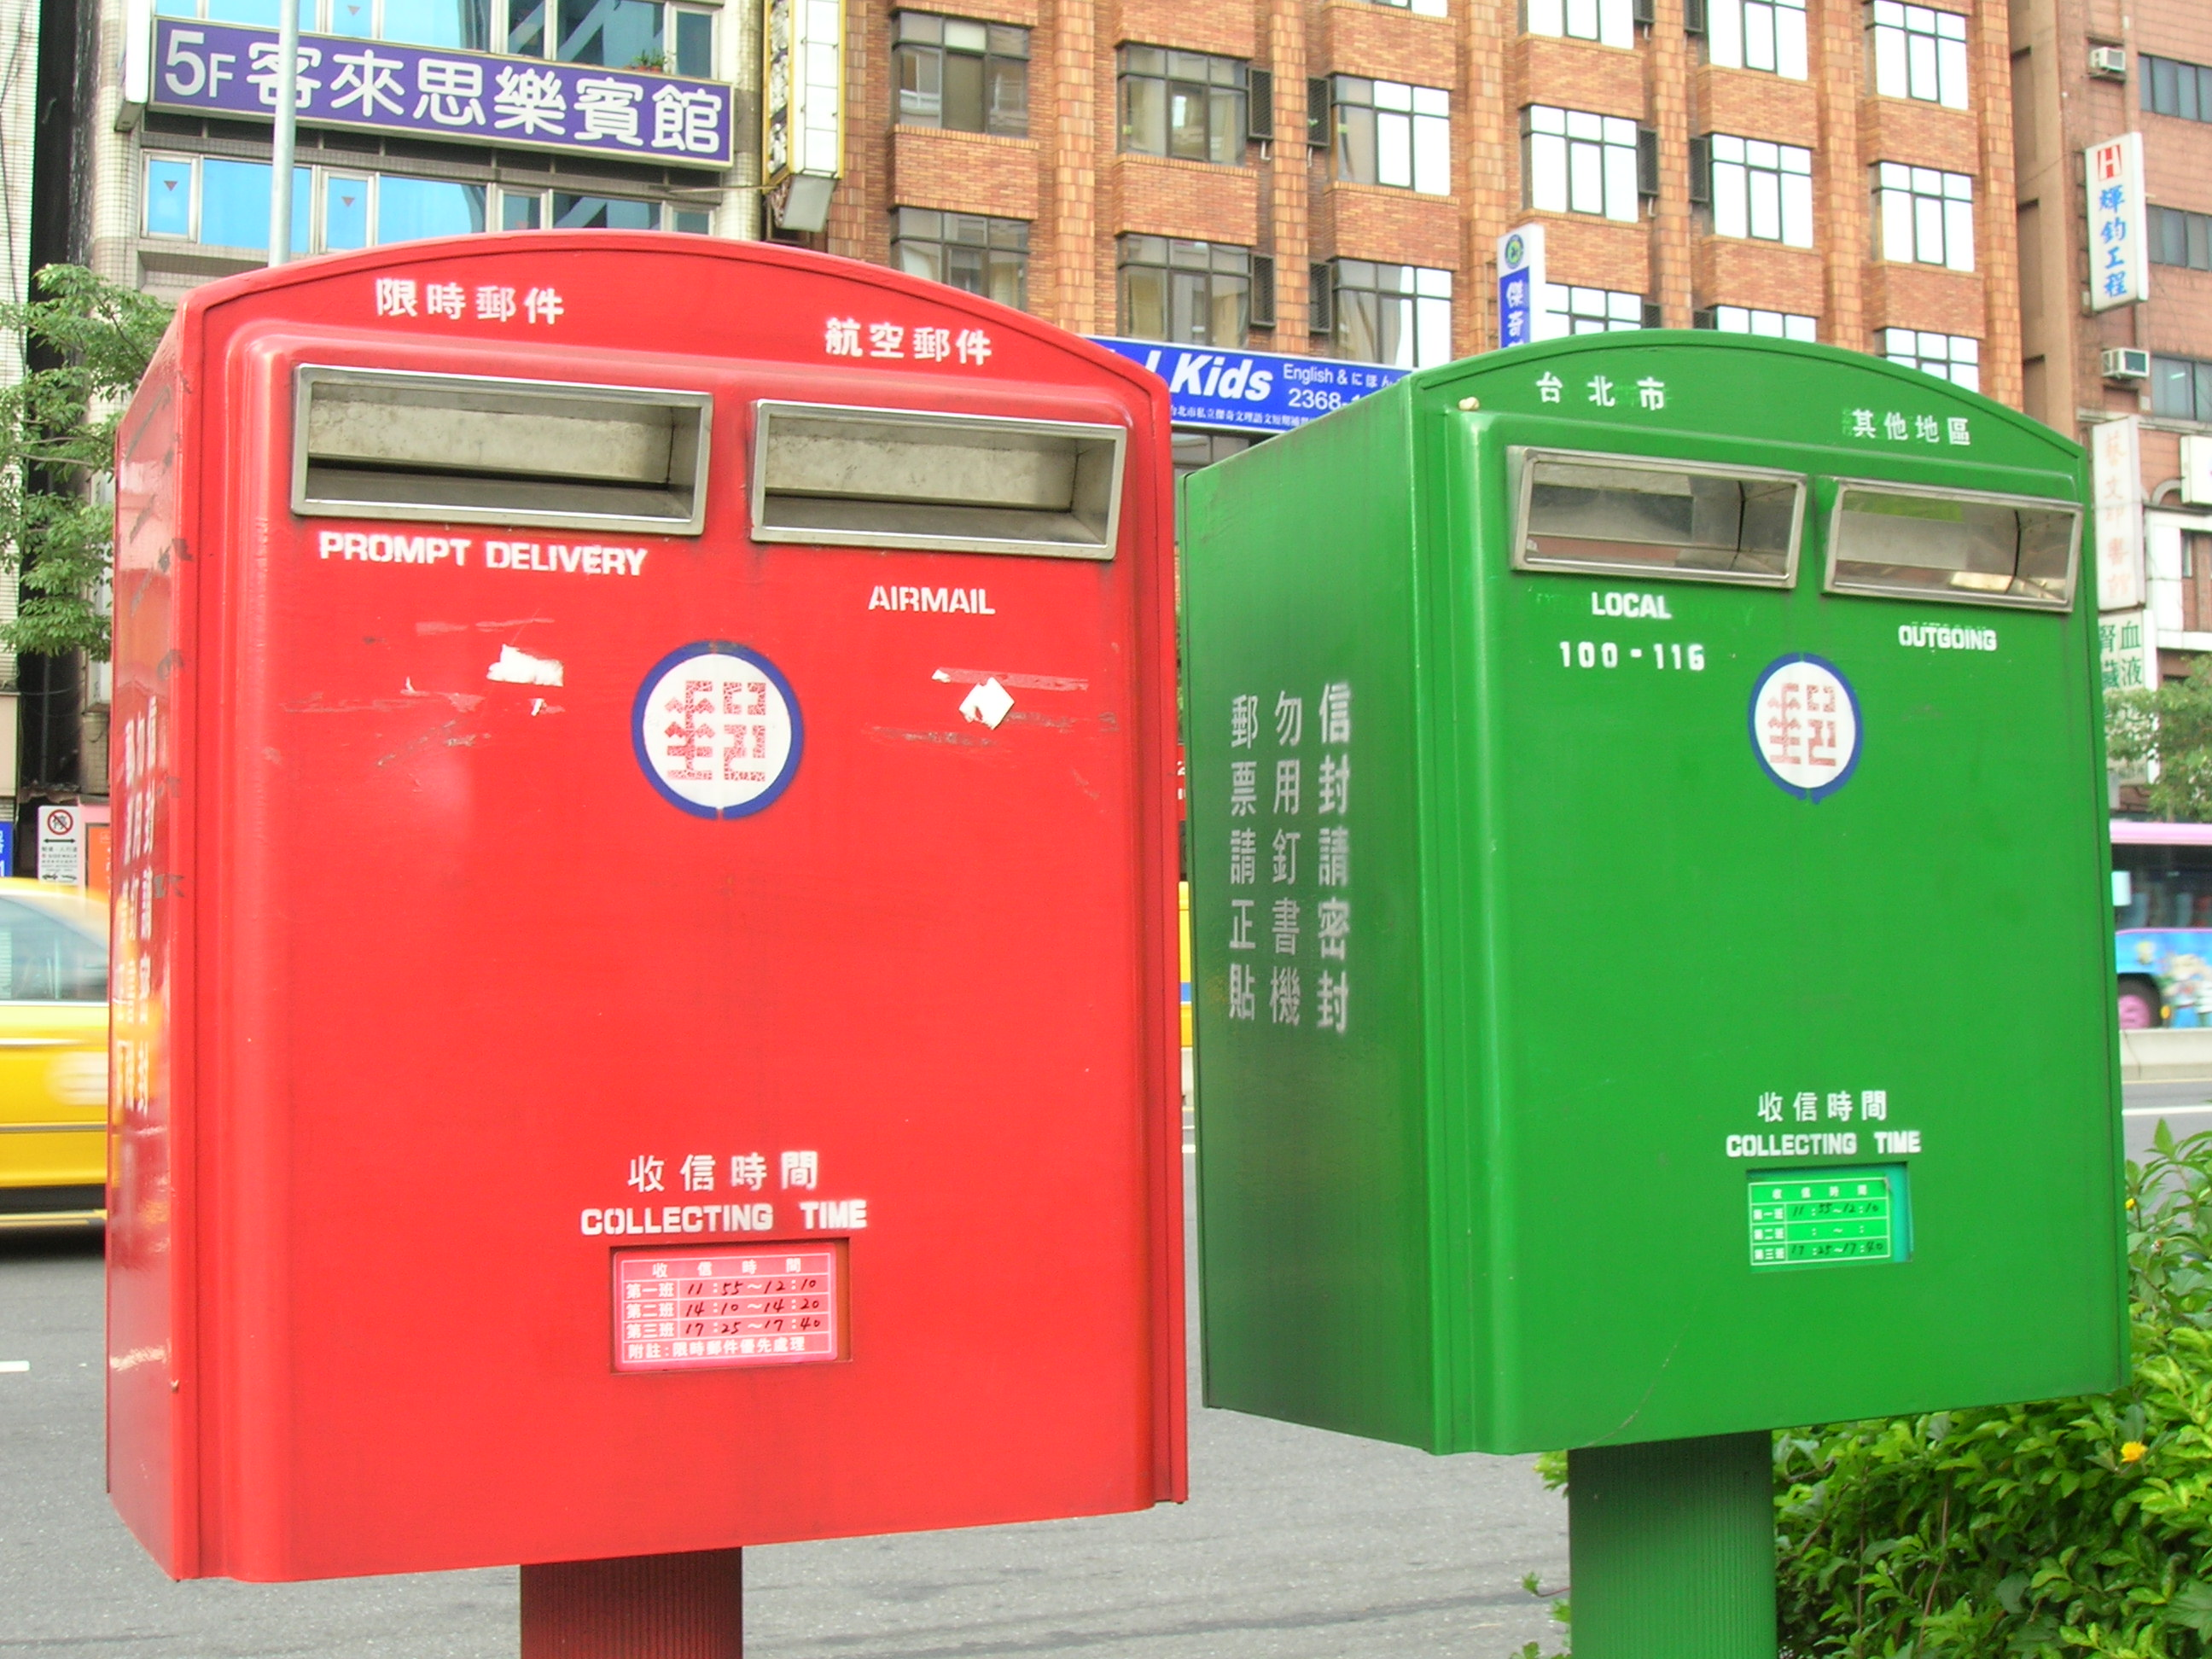 Post boxes in Gongguan, Taipei, Taiwan. Photo taken on July 23, 2007.